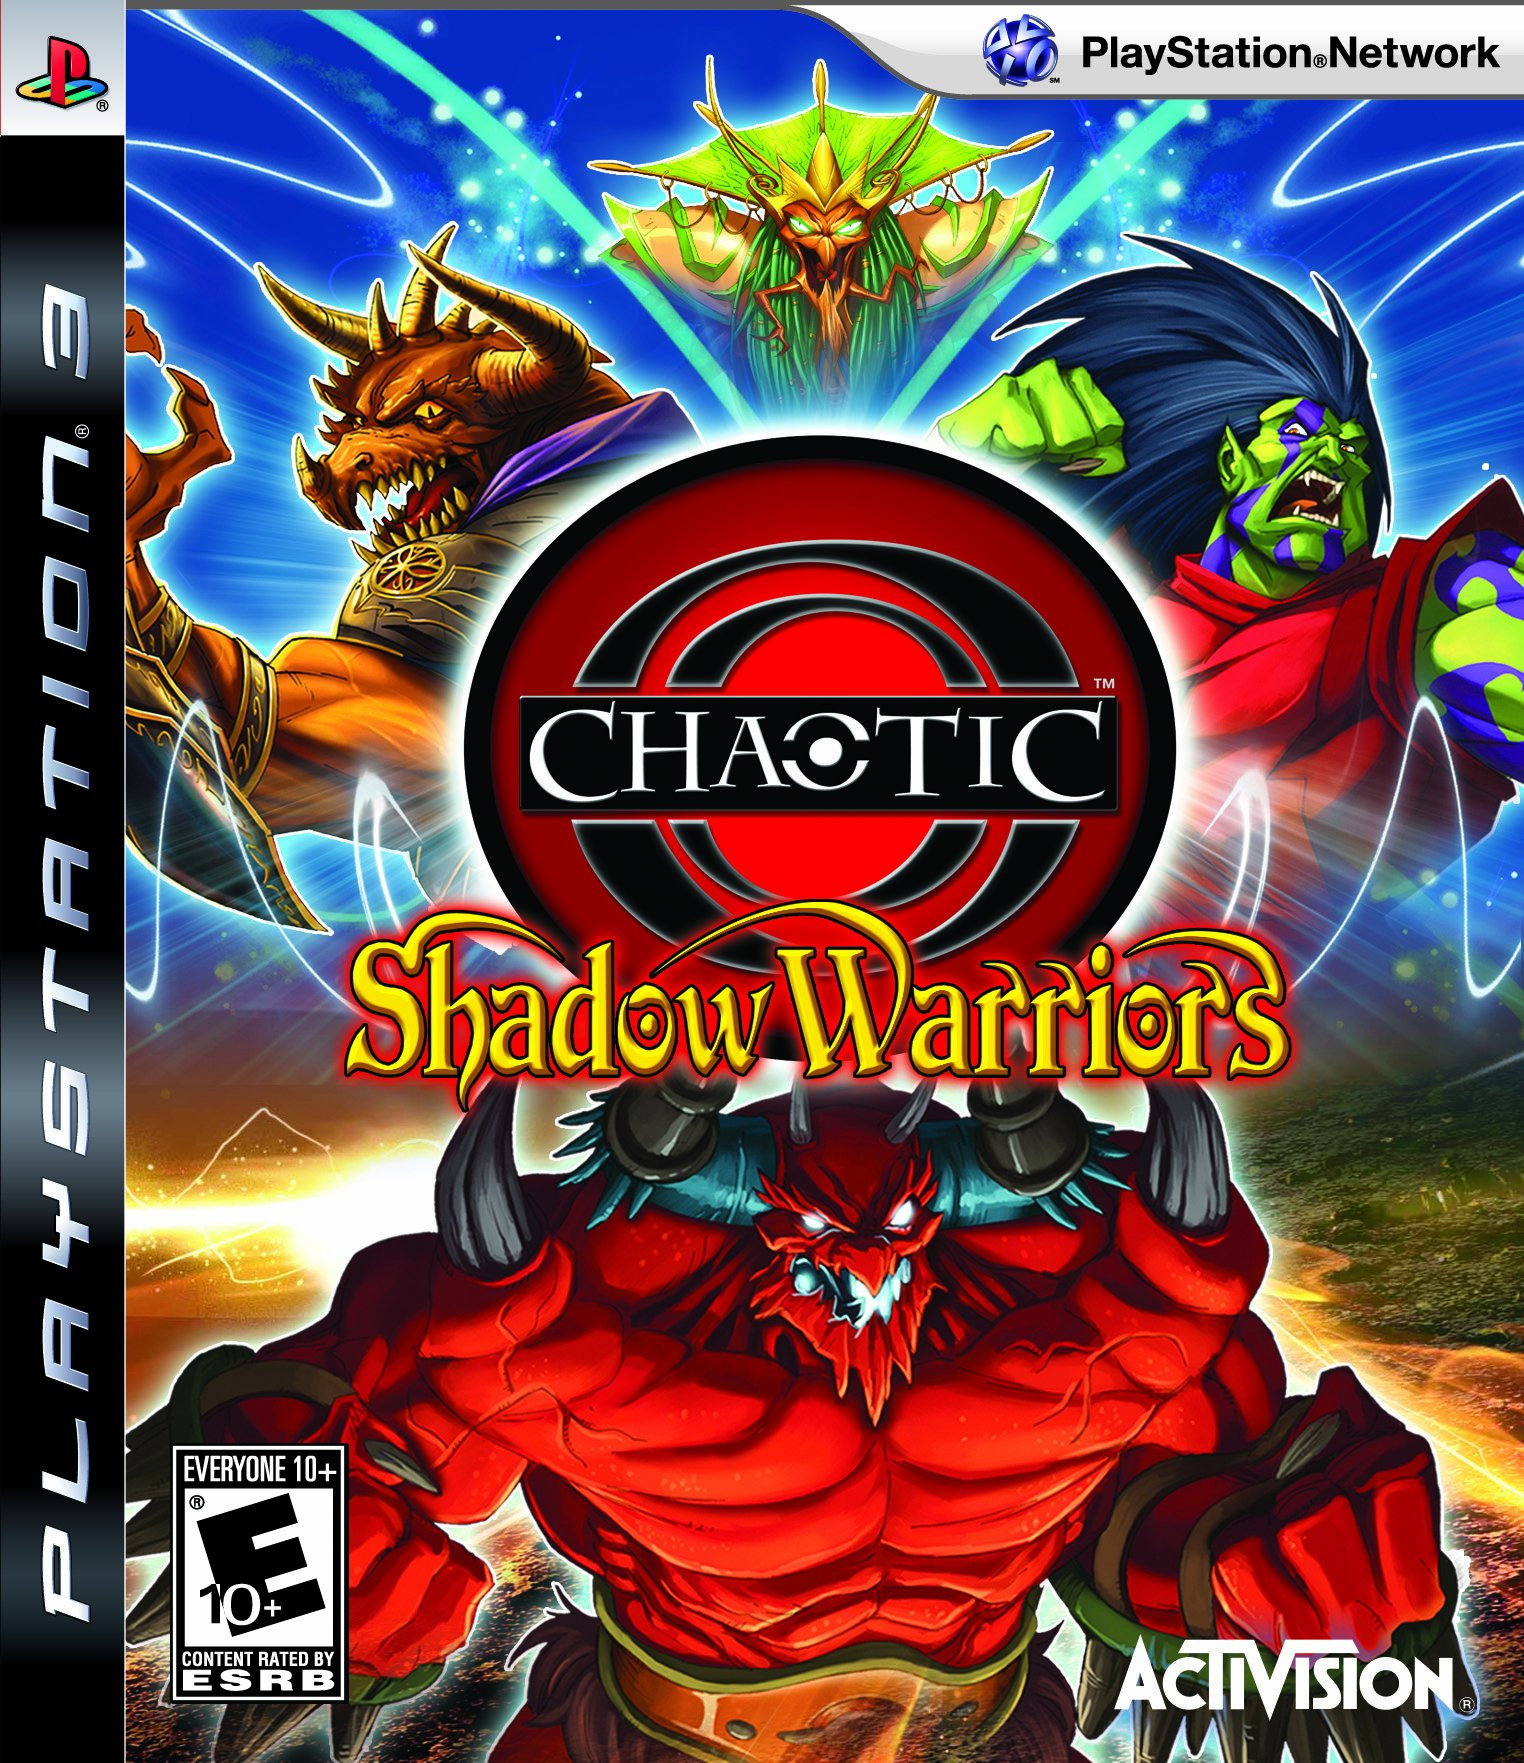 Chaotic Shadow Warriors Release Date PS3 Wii DS